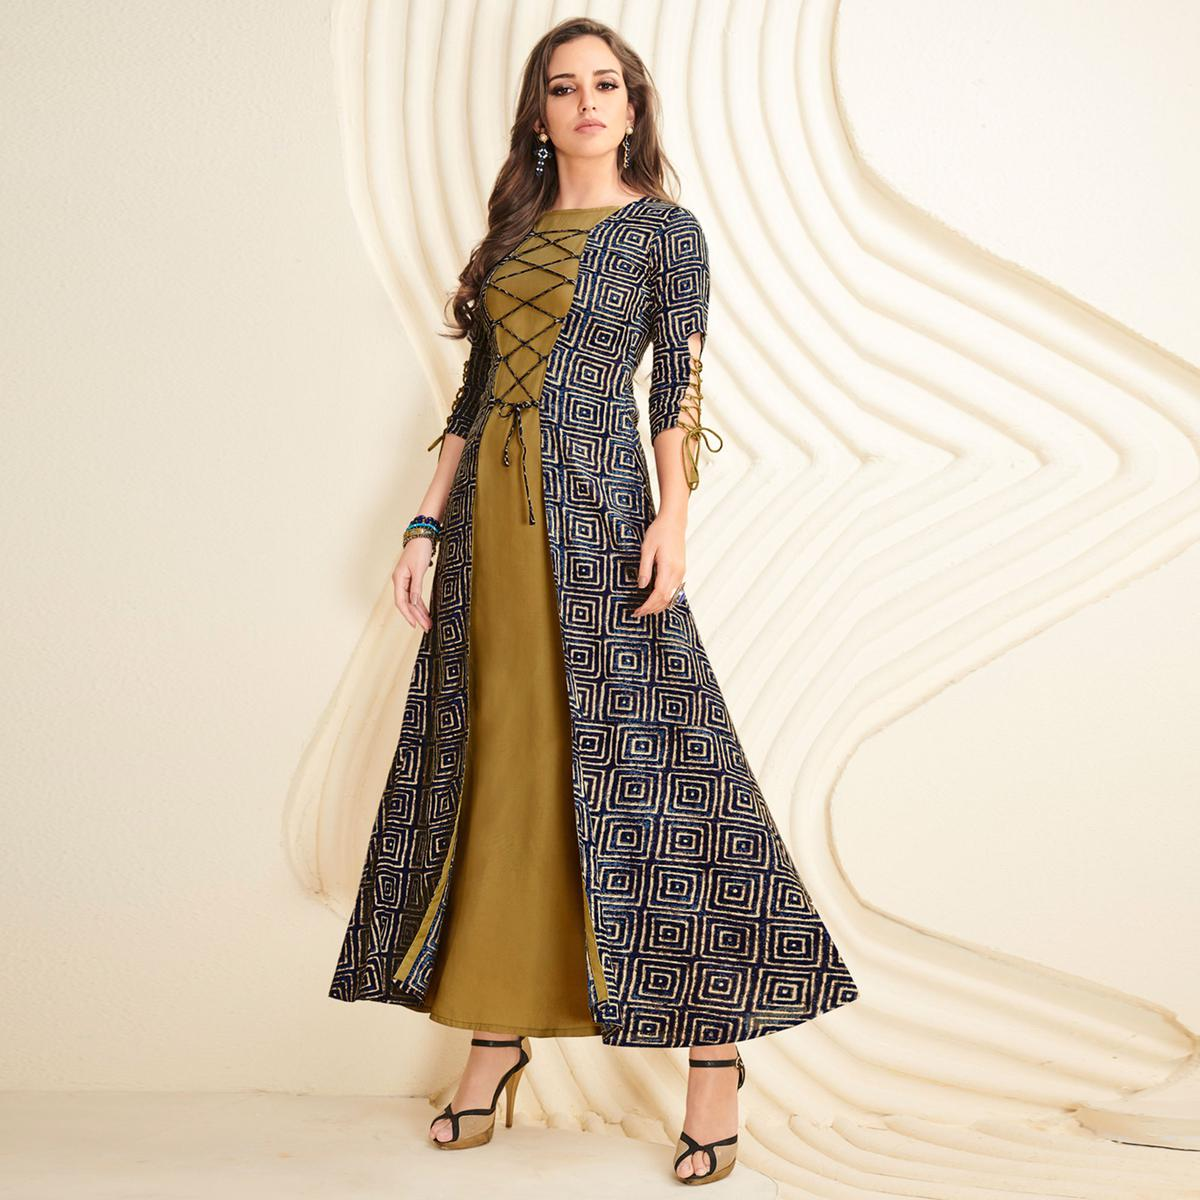 Breathtaking Olive Green-Navy Blue Colored Partywear Printed Rayon Long Kurti